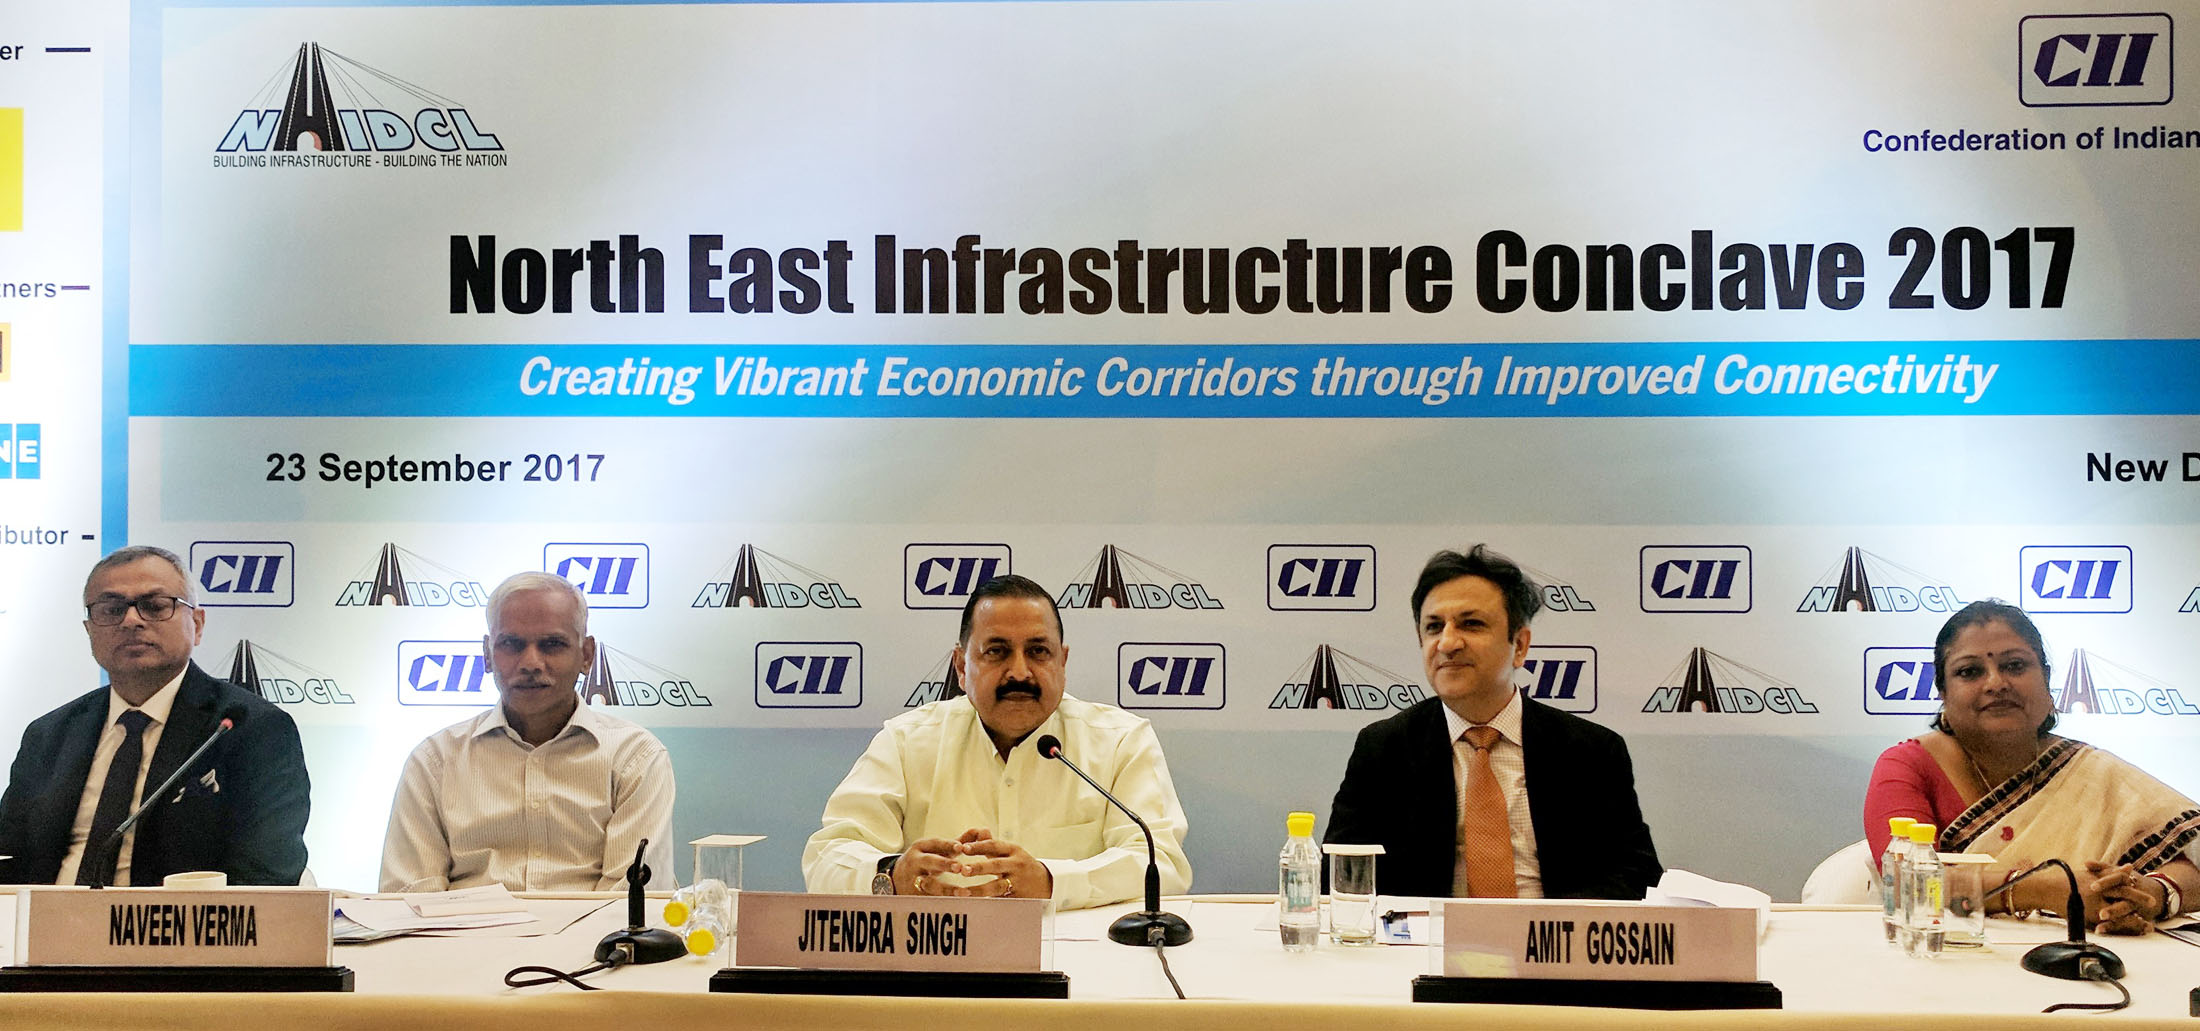 The Minister of State for Development of North Eastern Region (I/C), Prime Minister's Office, Personnel, Public Grievances & Pensions, Atomic Energy and Space, Dr. Jitendra Singh at the North East Infrastructure Conclave, in New Delhi on September 23, 2017. The Secretary, DoNER, Shri Naveen Verma is also seen.